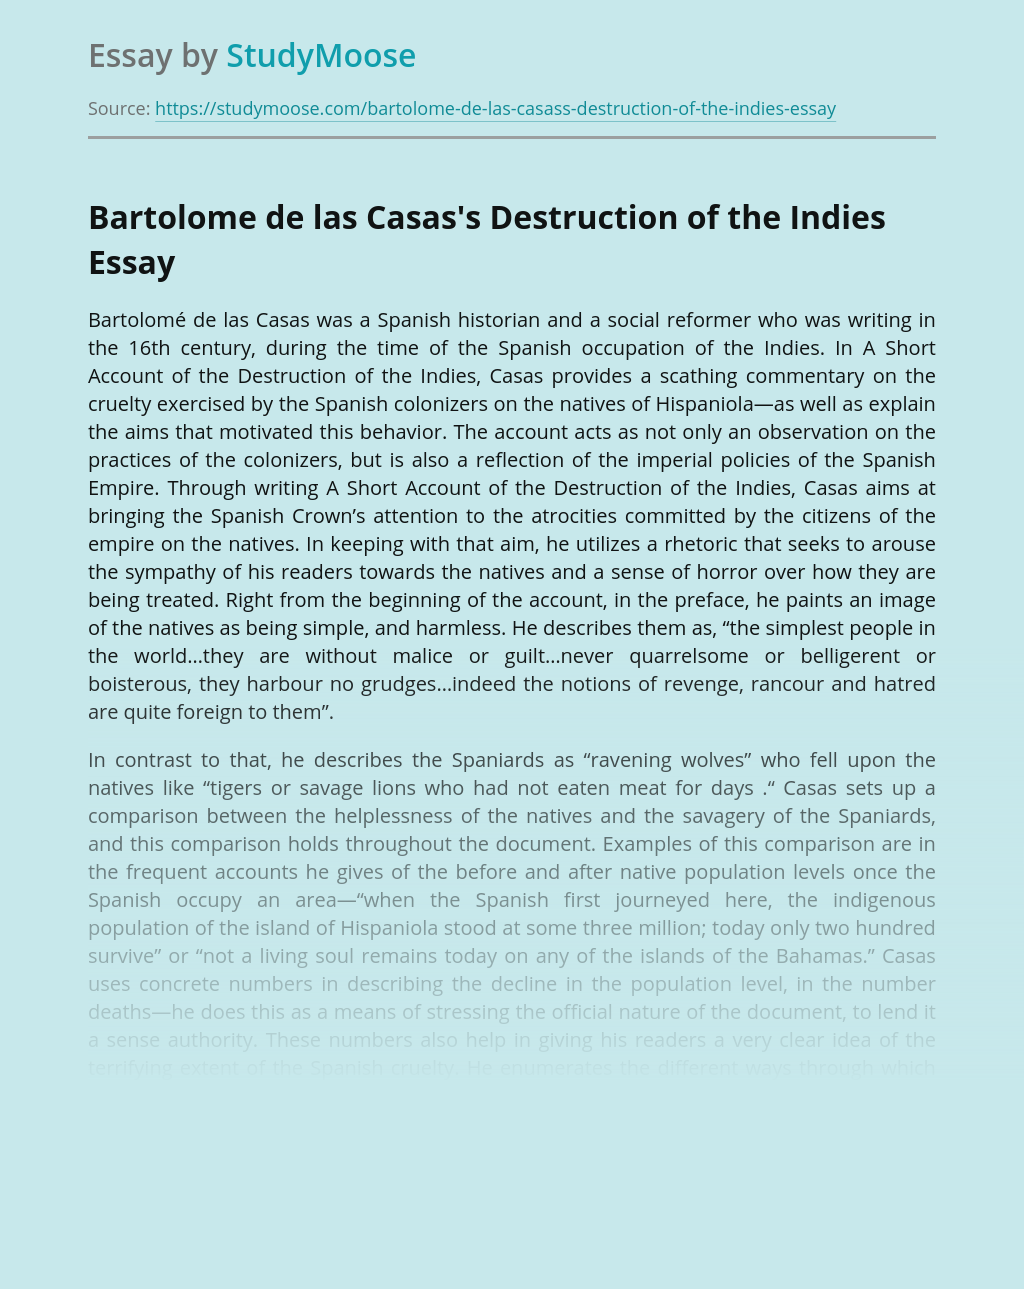 Analysis of Colonization in Destruction of the Indies